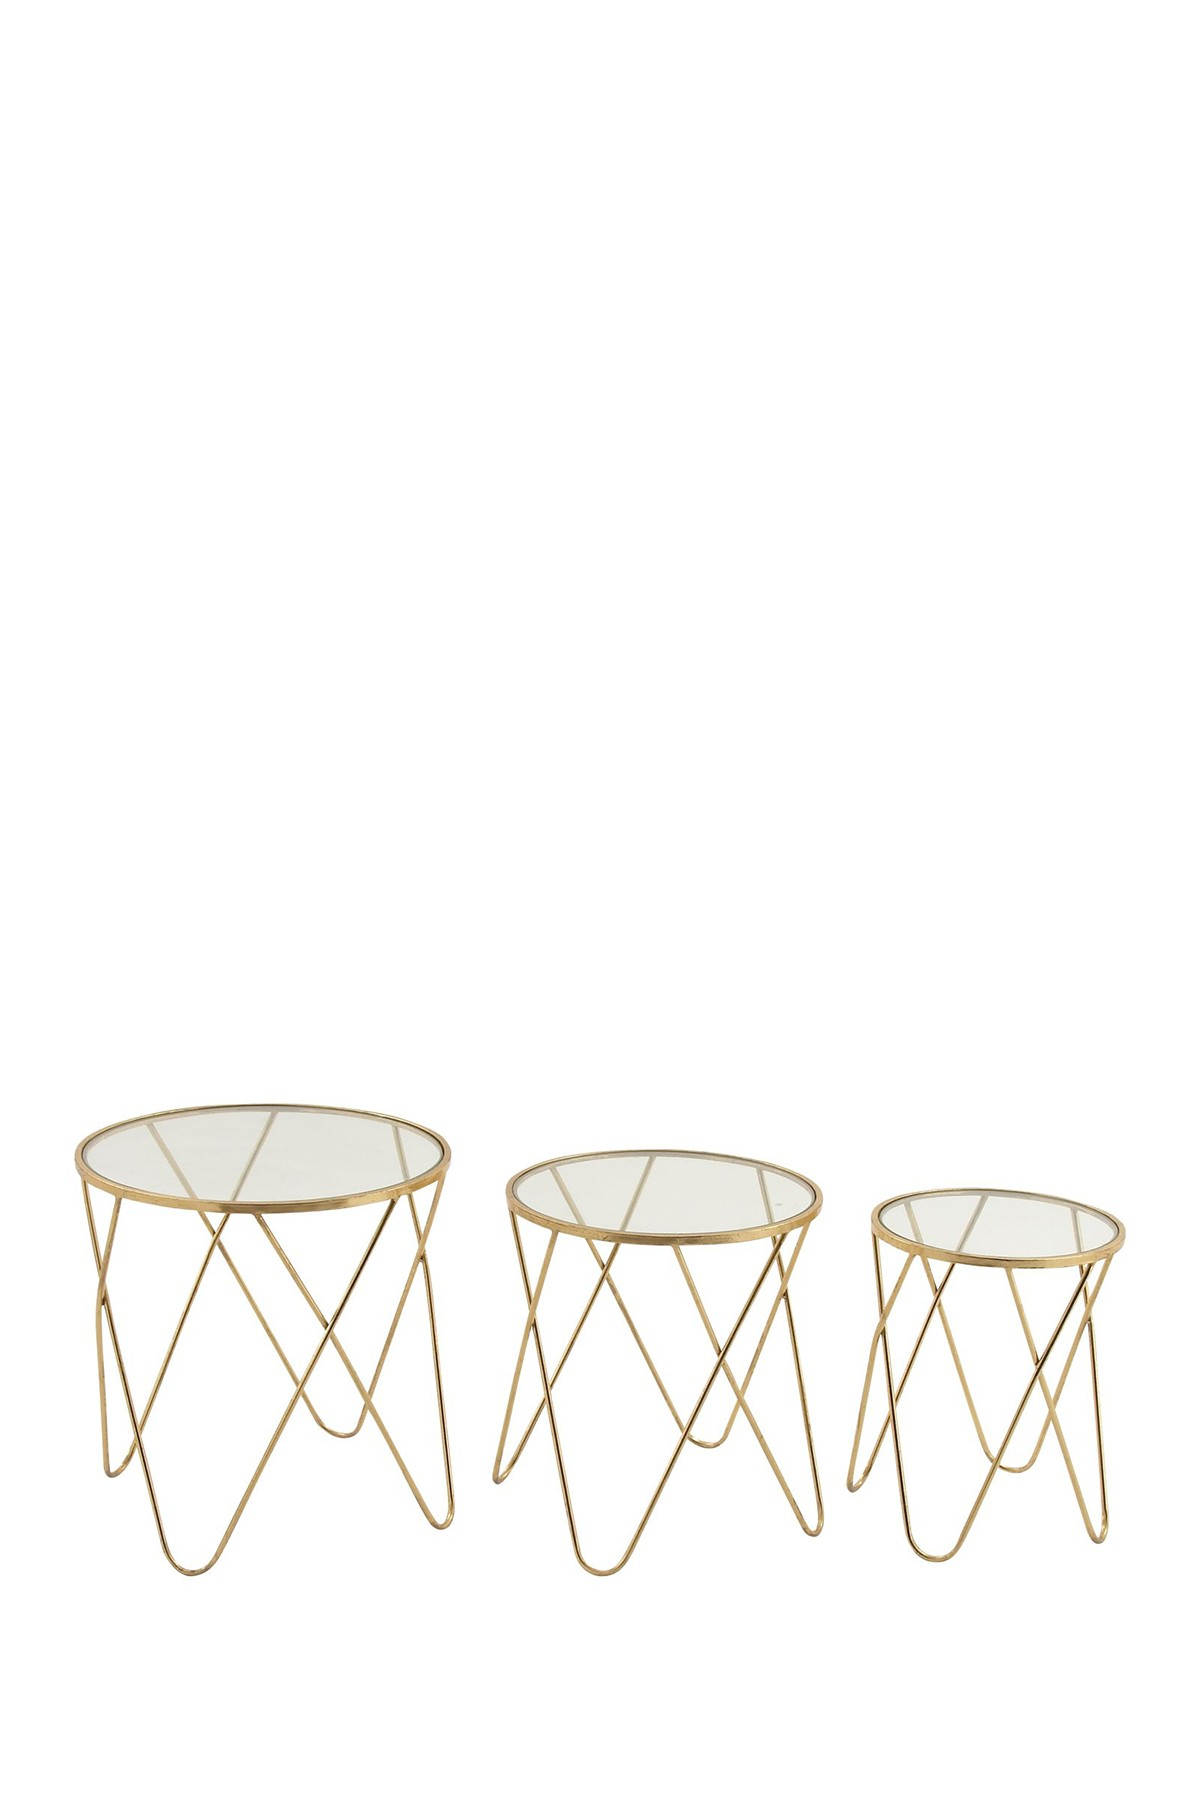 uma metal glass accent tables set nordstrom rack table entrance console placemats and coasters dorm room decor modern gold chandelier rustic outdoor furniture yellow side sofa red